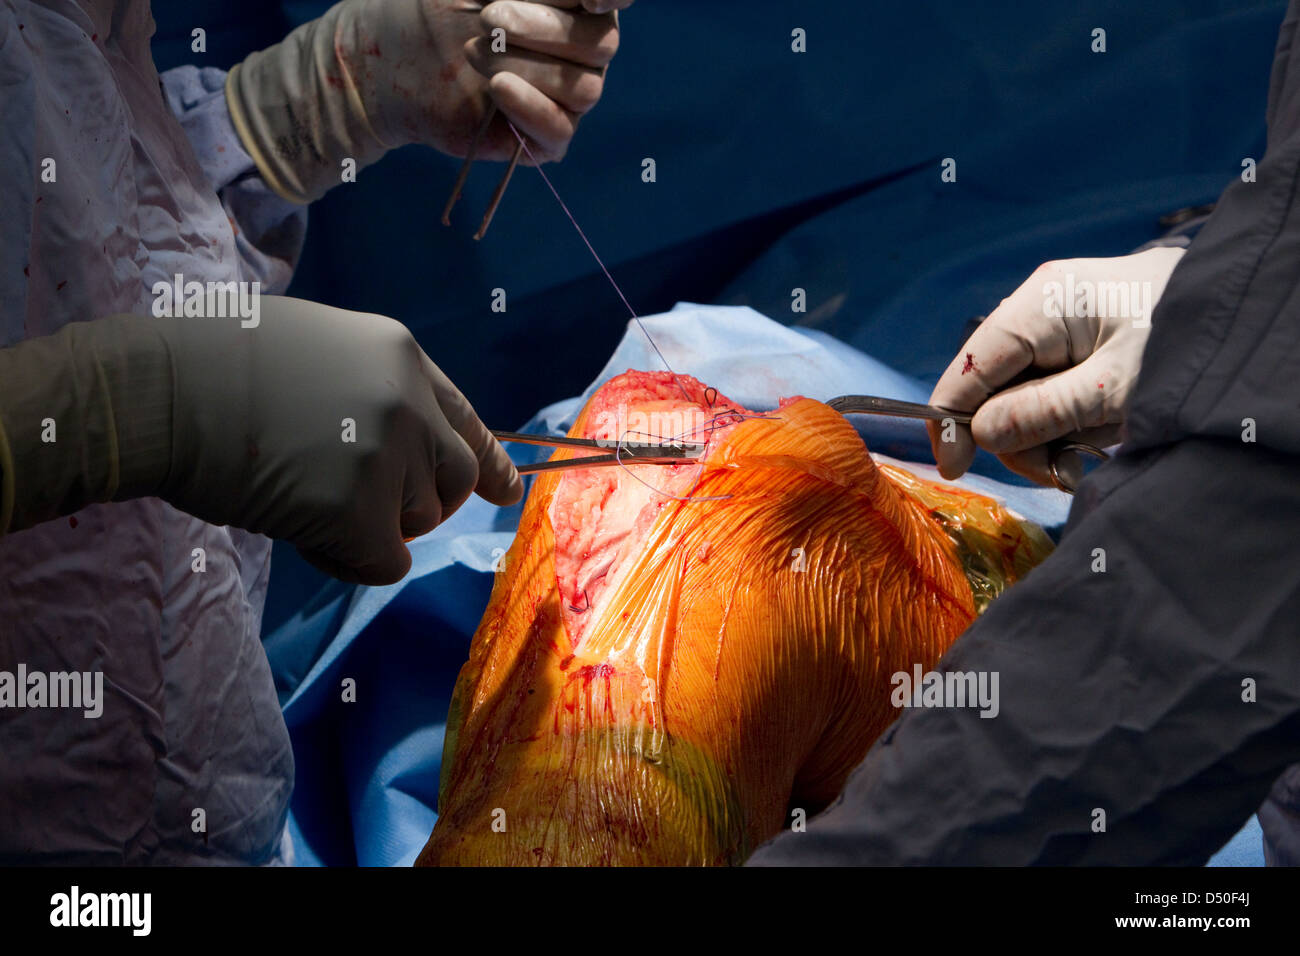 Hospital operation surgery NHS Admission Doctor Surgeon admission - Stock Image